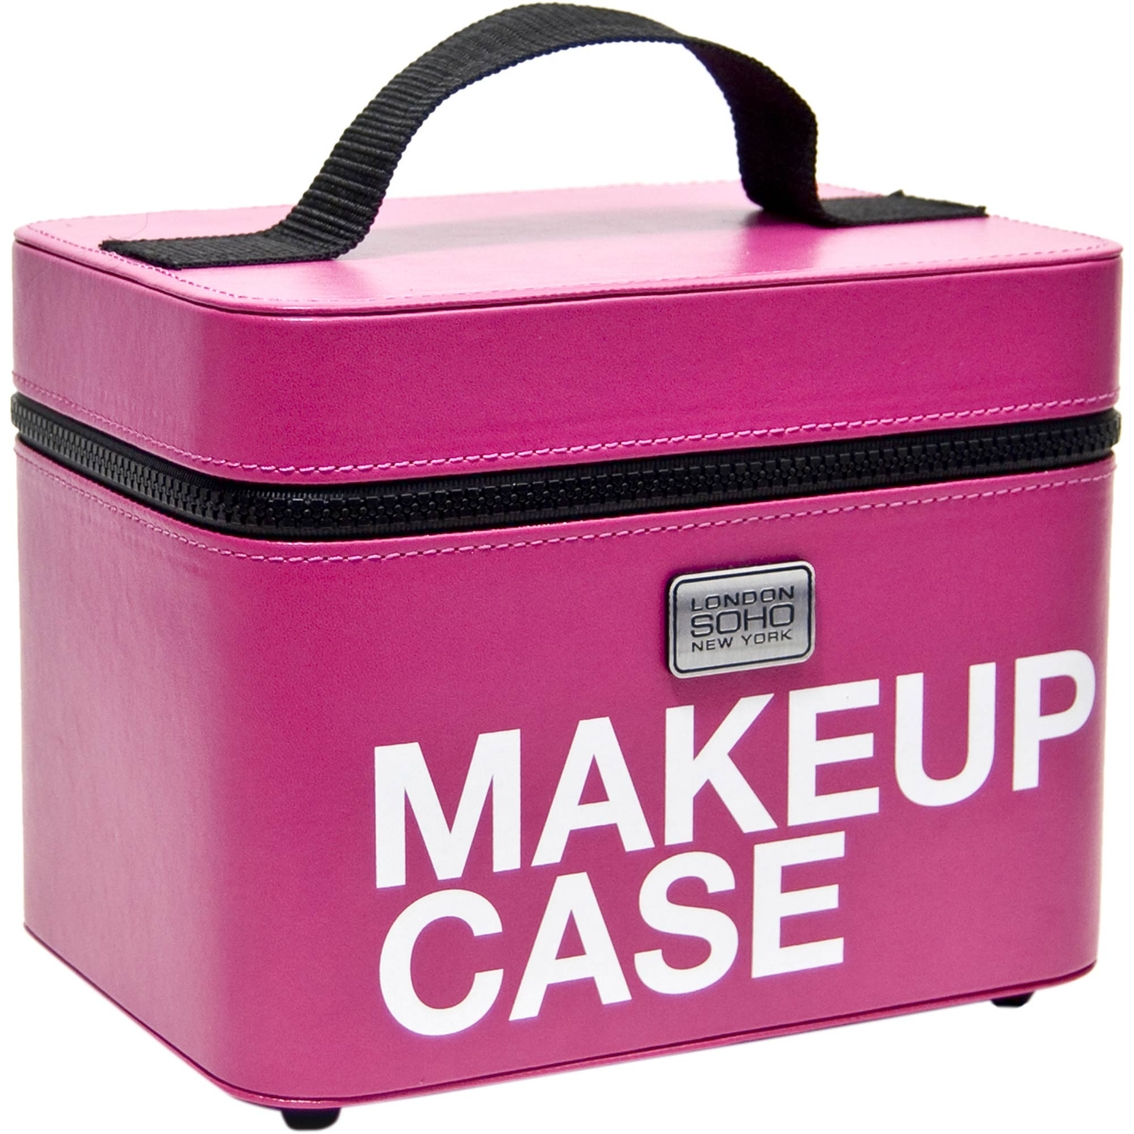 Soho Makeup Case Cosmetic Bags Beauty Health Shop The Exchange